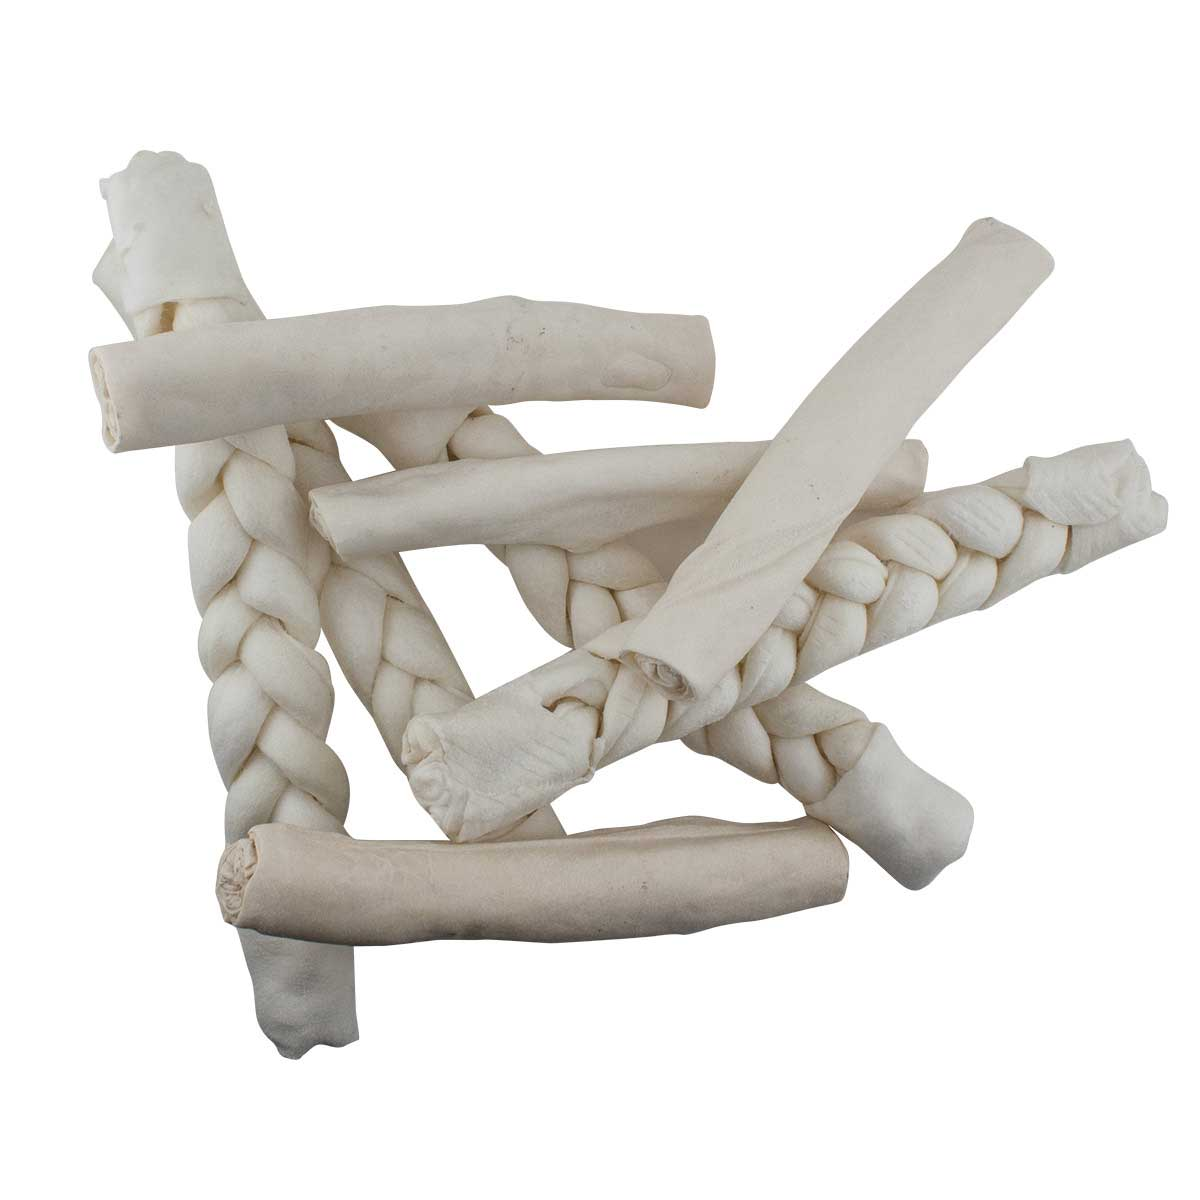 "For Dogs 6-7"" Rawhide Braided Retriever"